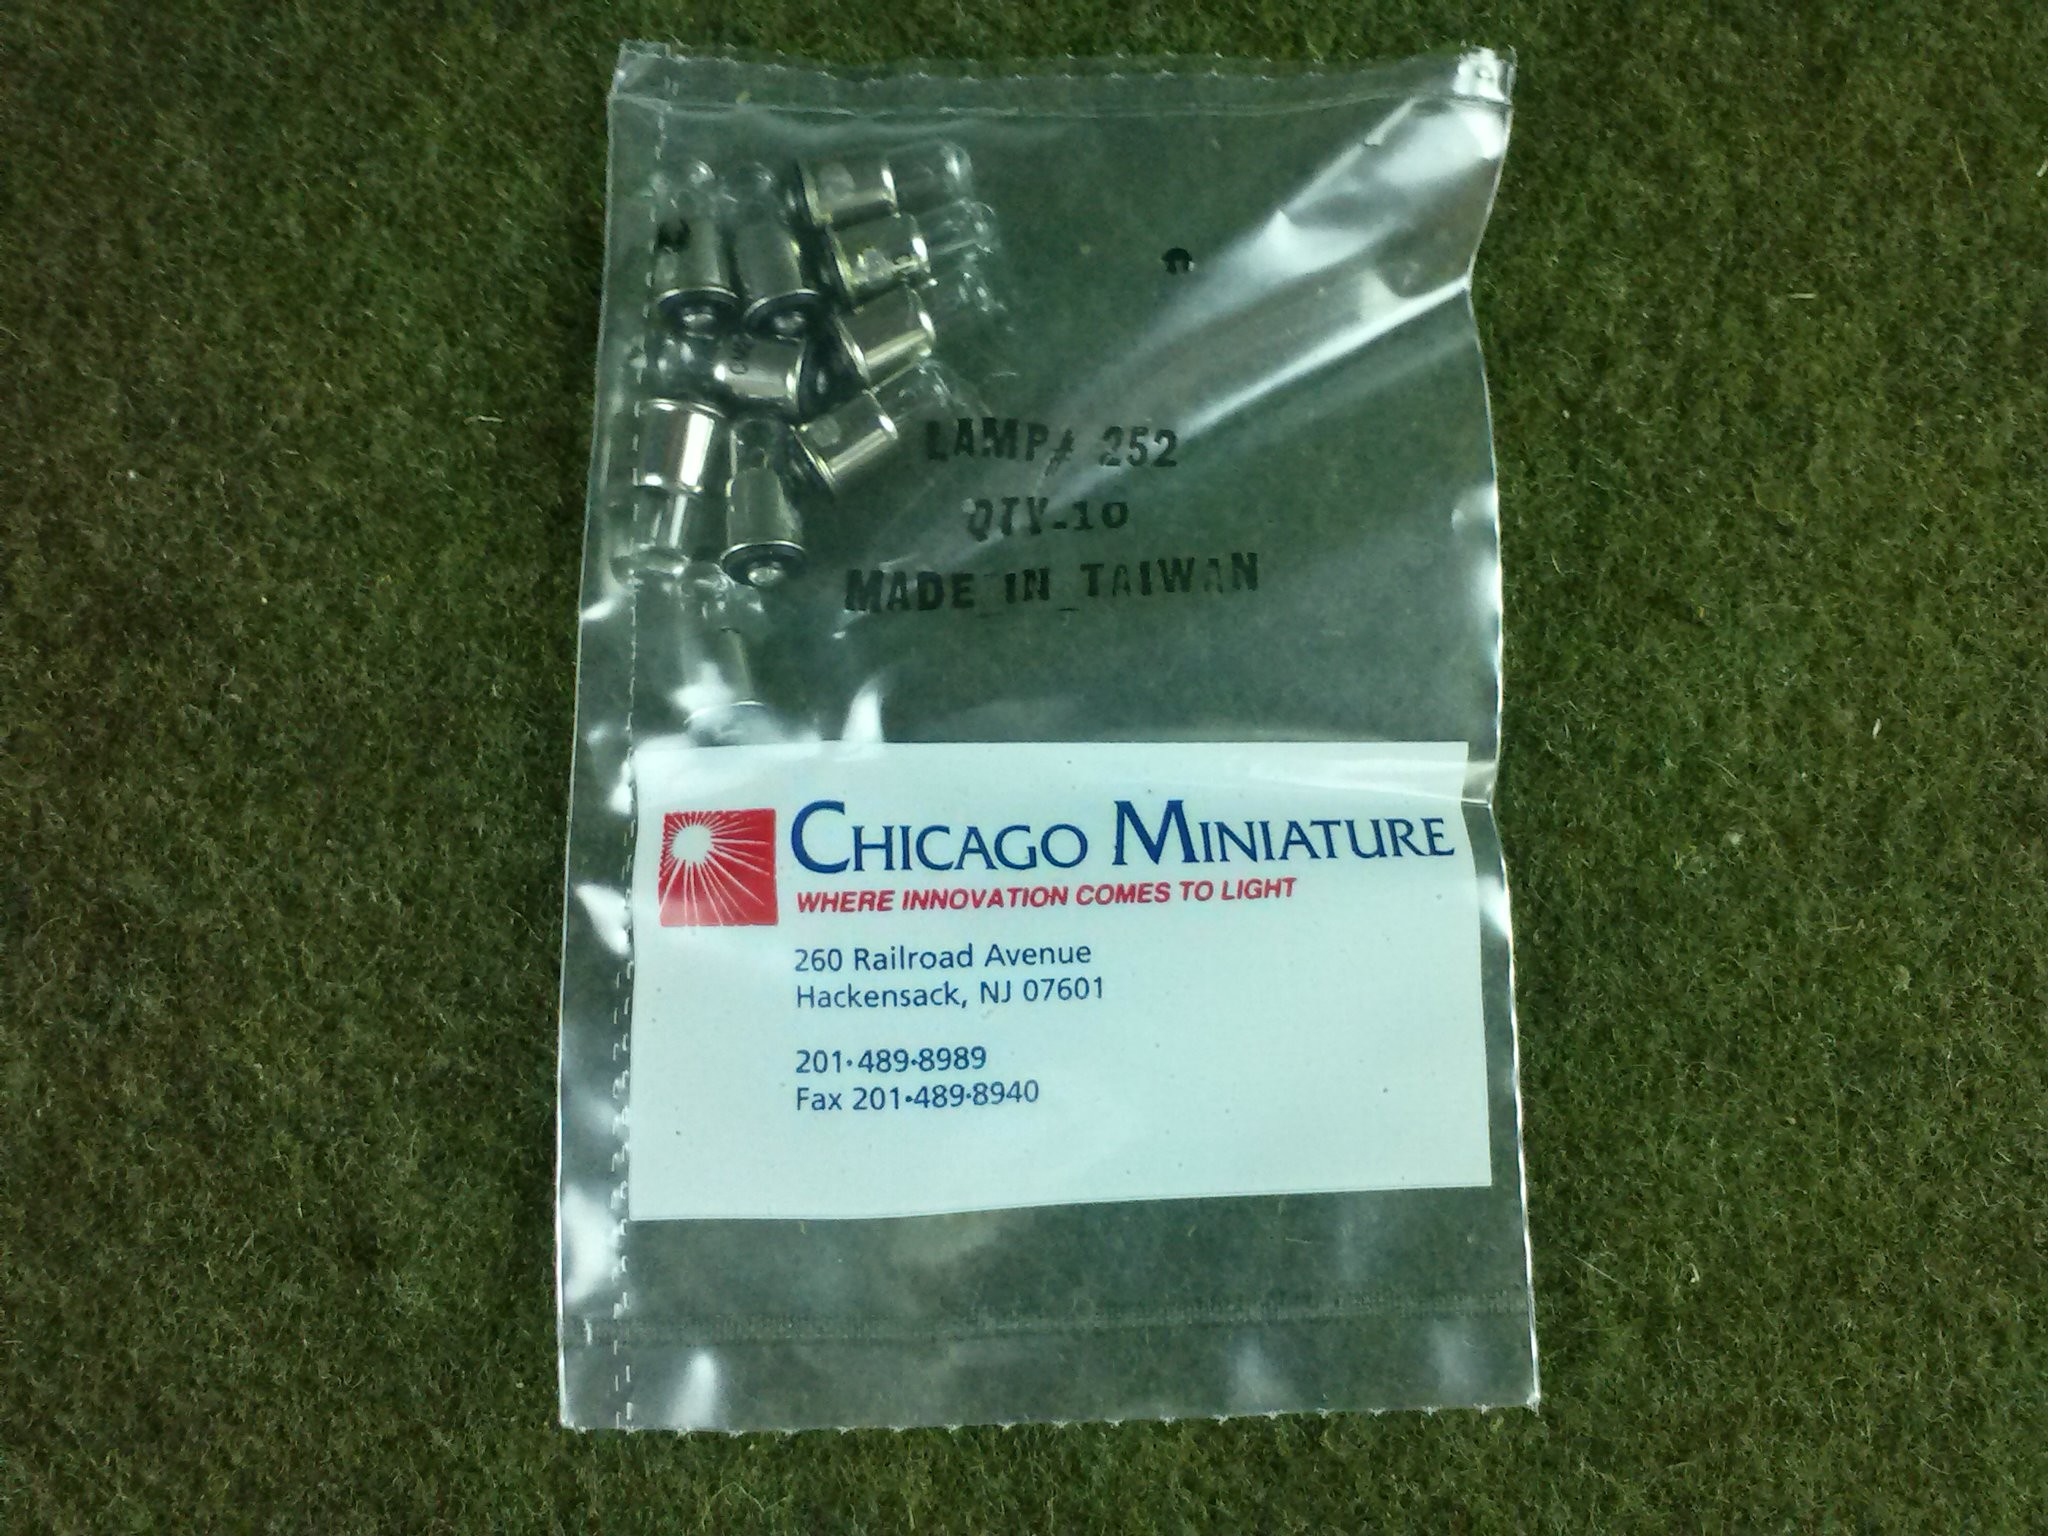 100 Chicago Miniature TL-1.25 Flanged Midget 2.5v .35 Amo Clear Bulb